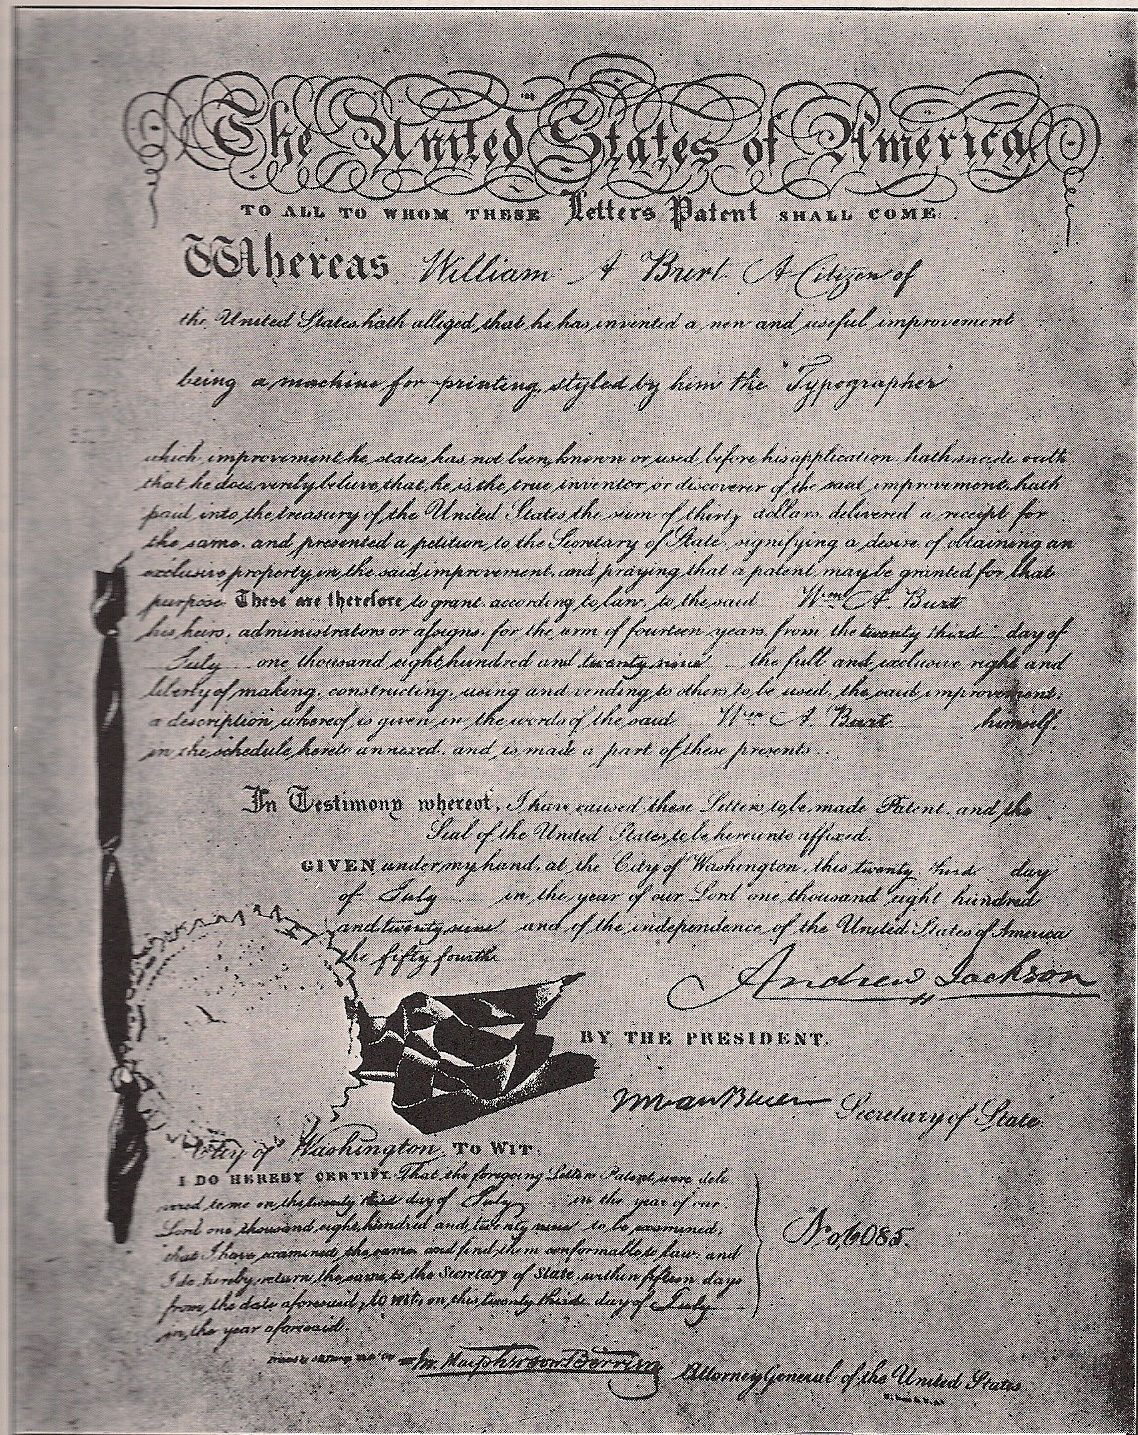 Letters Patent 1829 – signed by President Andrew Jackson